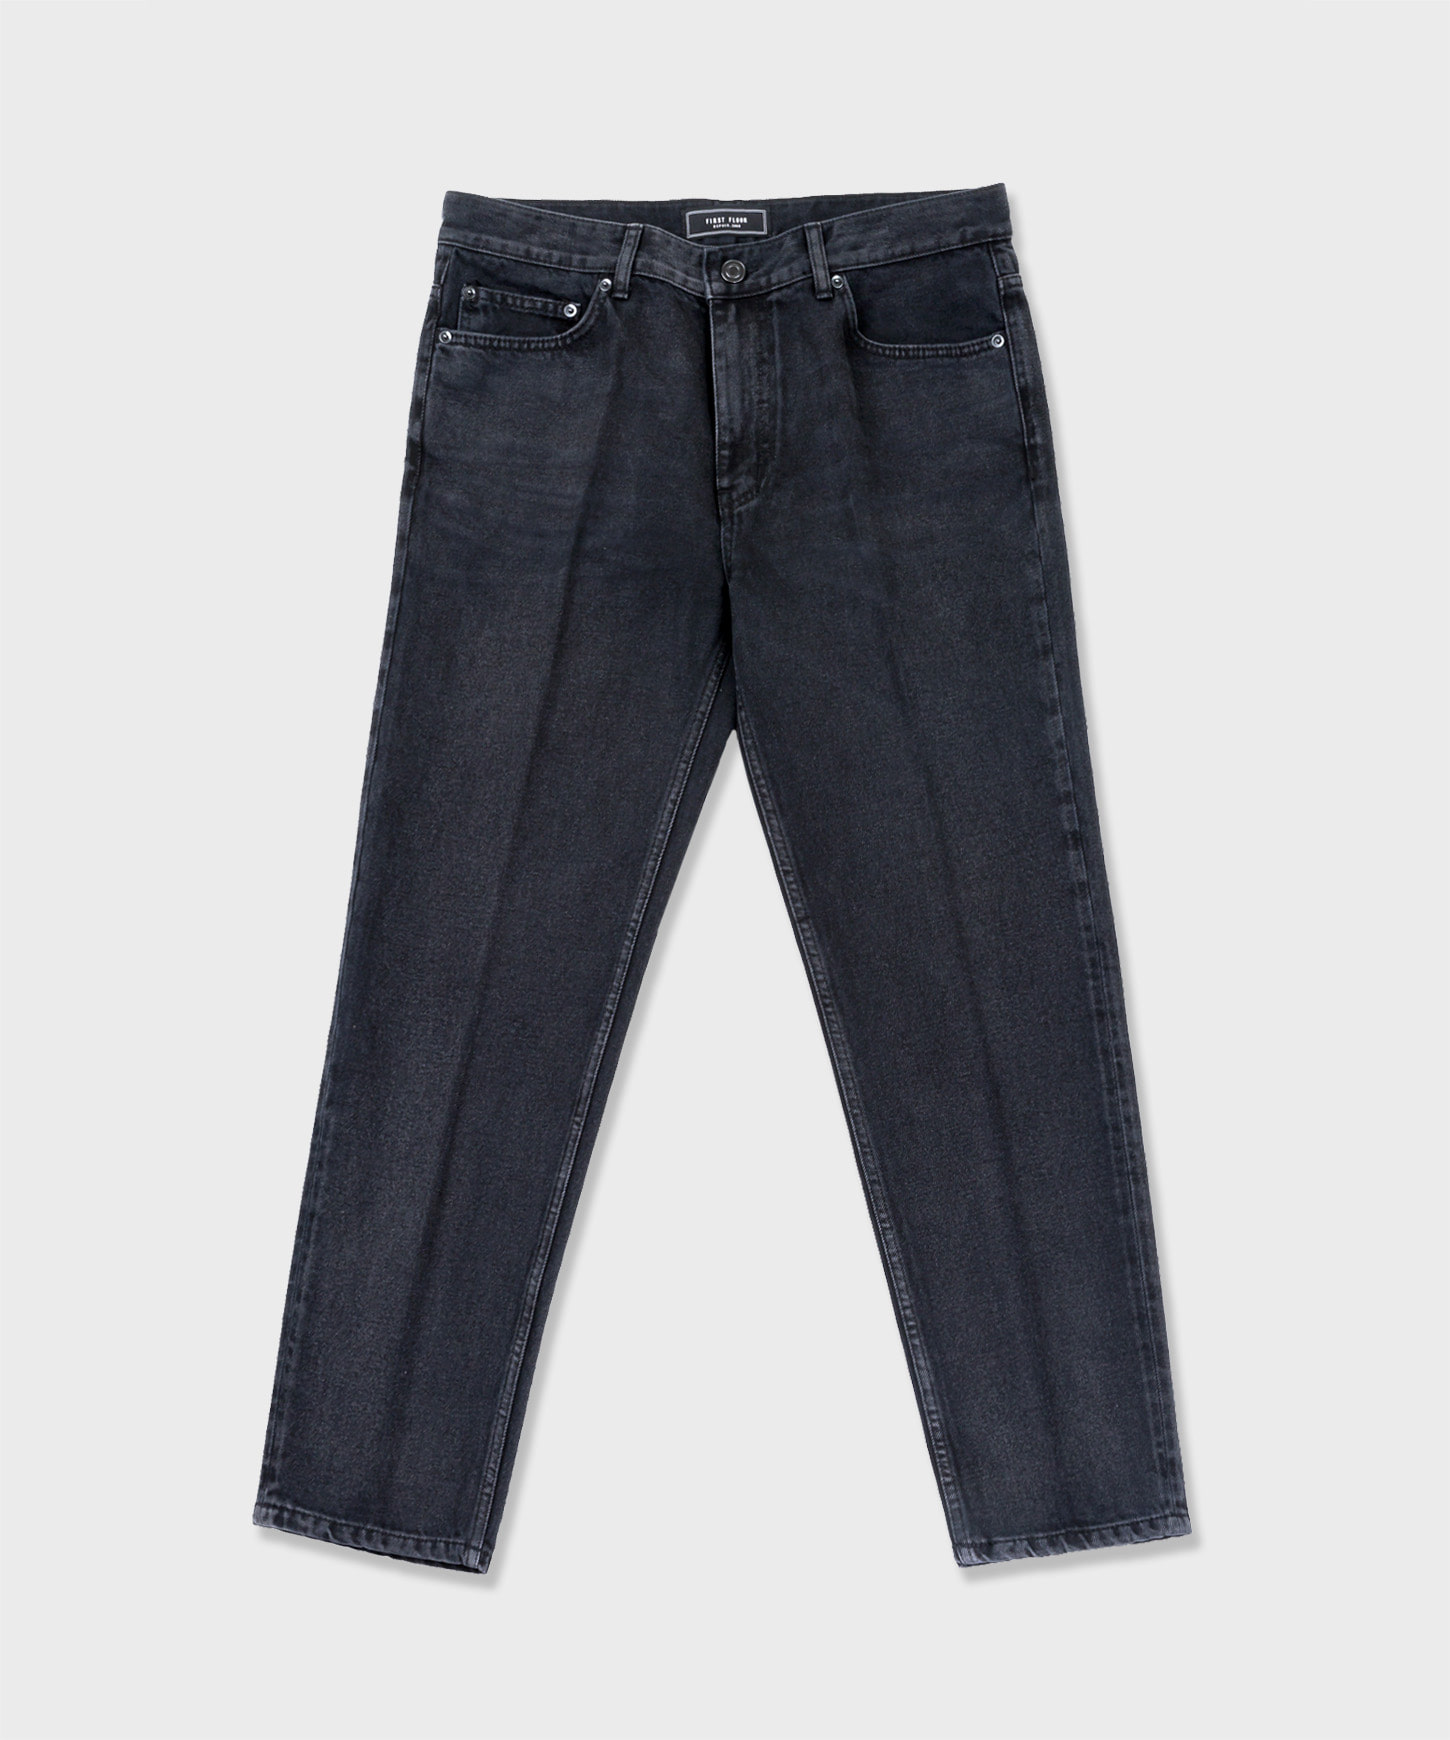 1968 denimn (FADED BLACK)